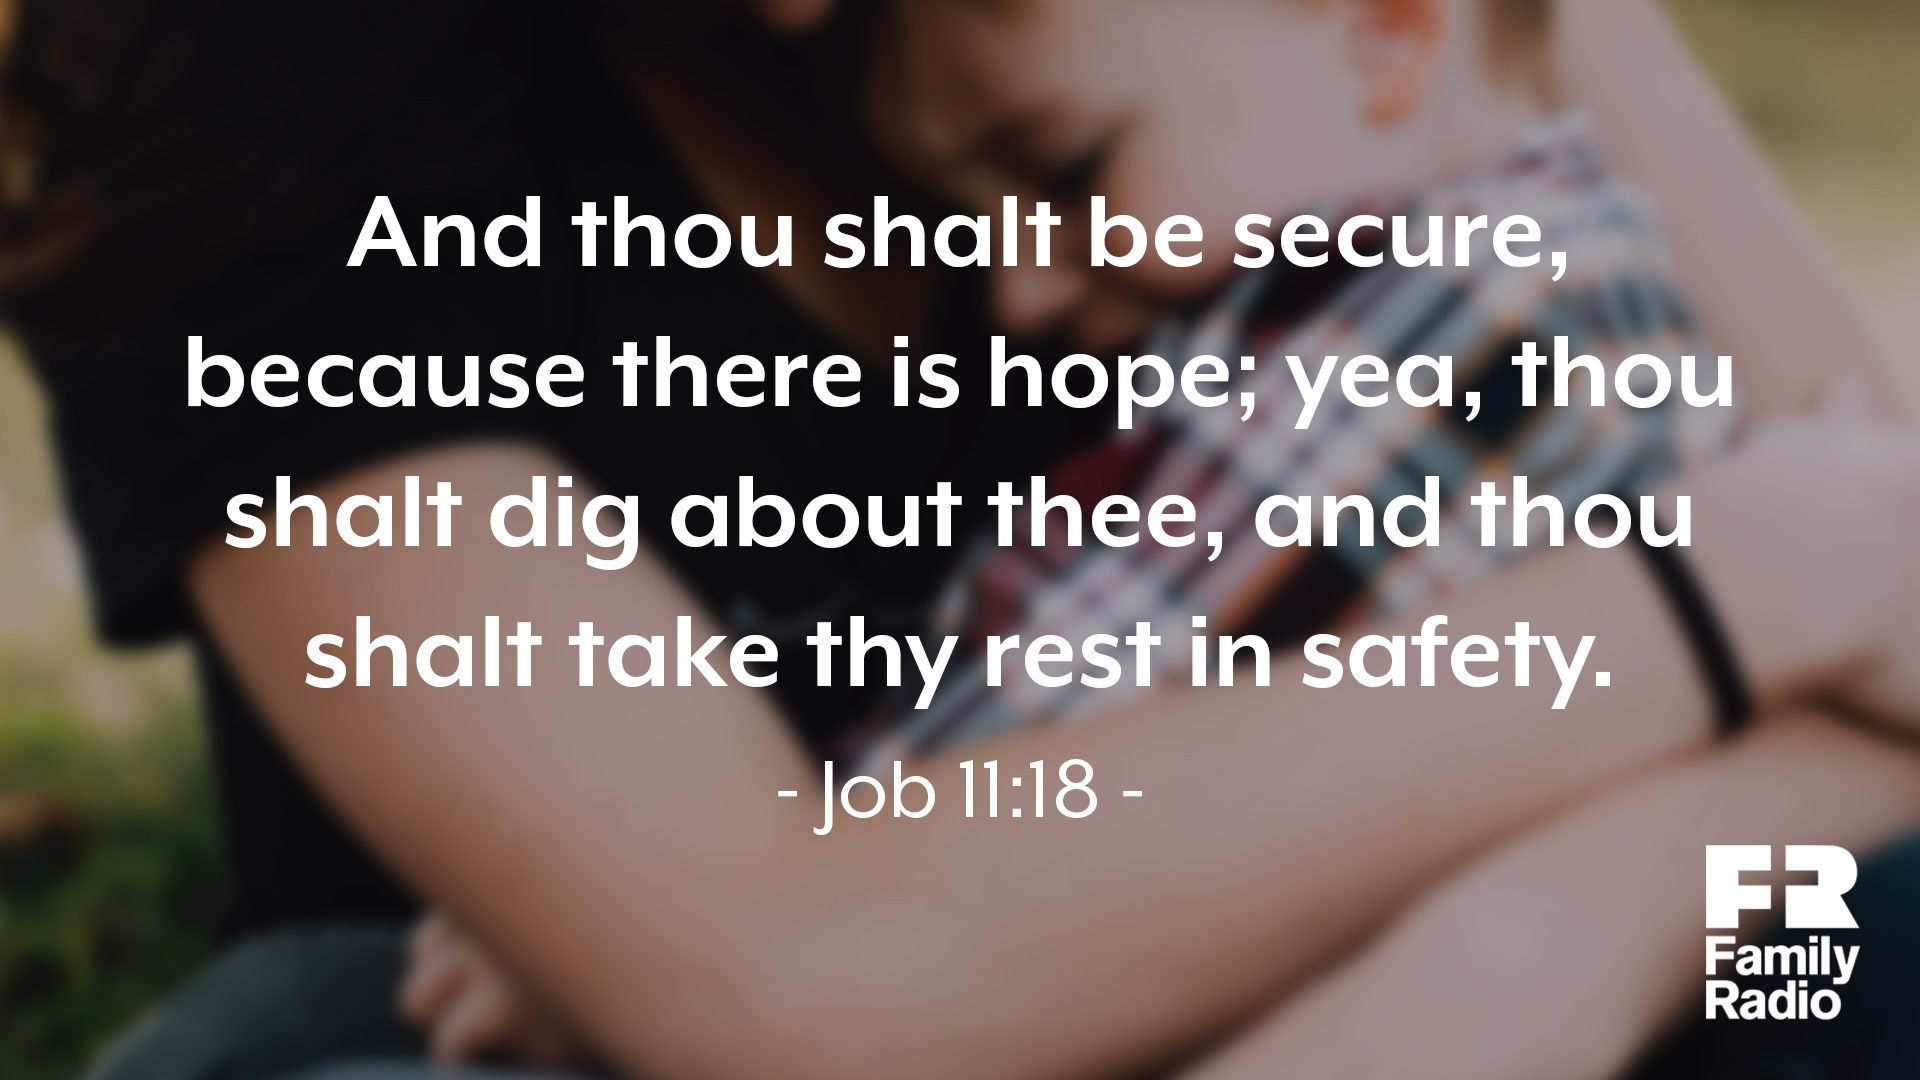 """And thou shalt be secure, because there is hope; yea, thou shalt dig about thee, and thou shalt take they rest in safety."""